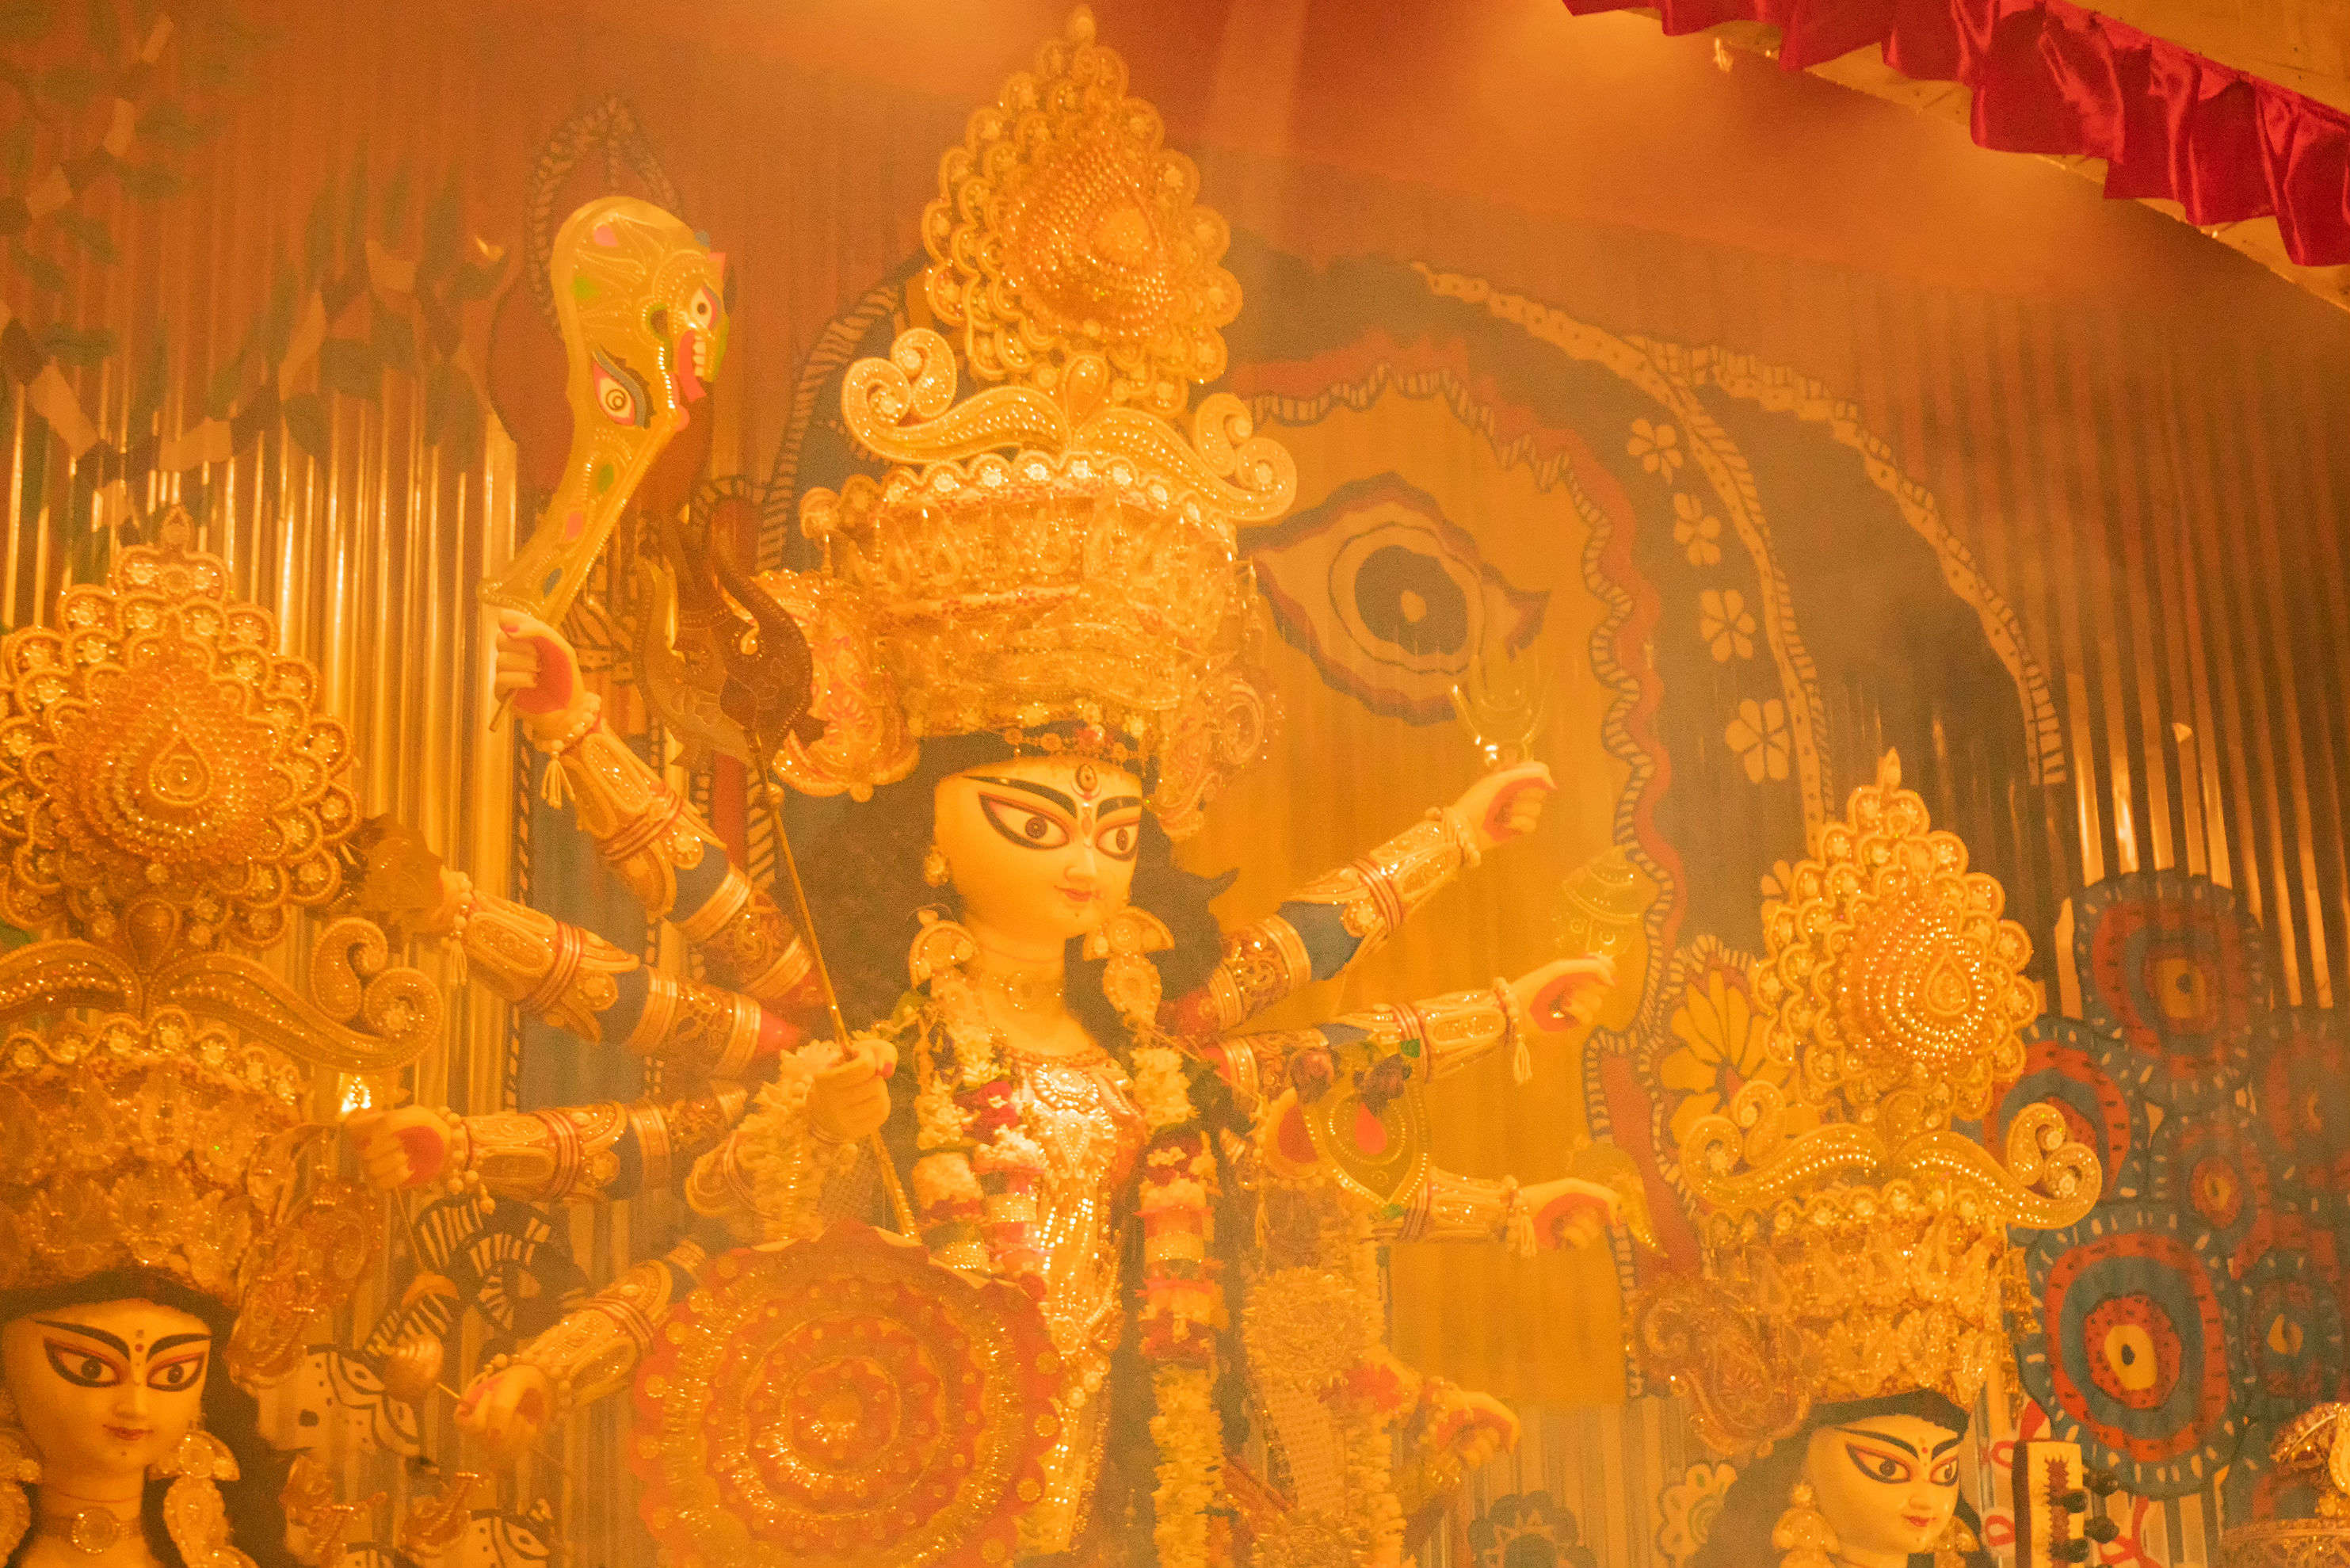 Kolkata's Durga Puja to be nominated for UNSECO World Heritage Site